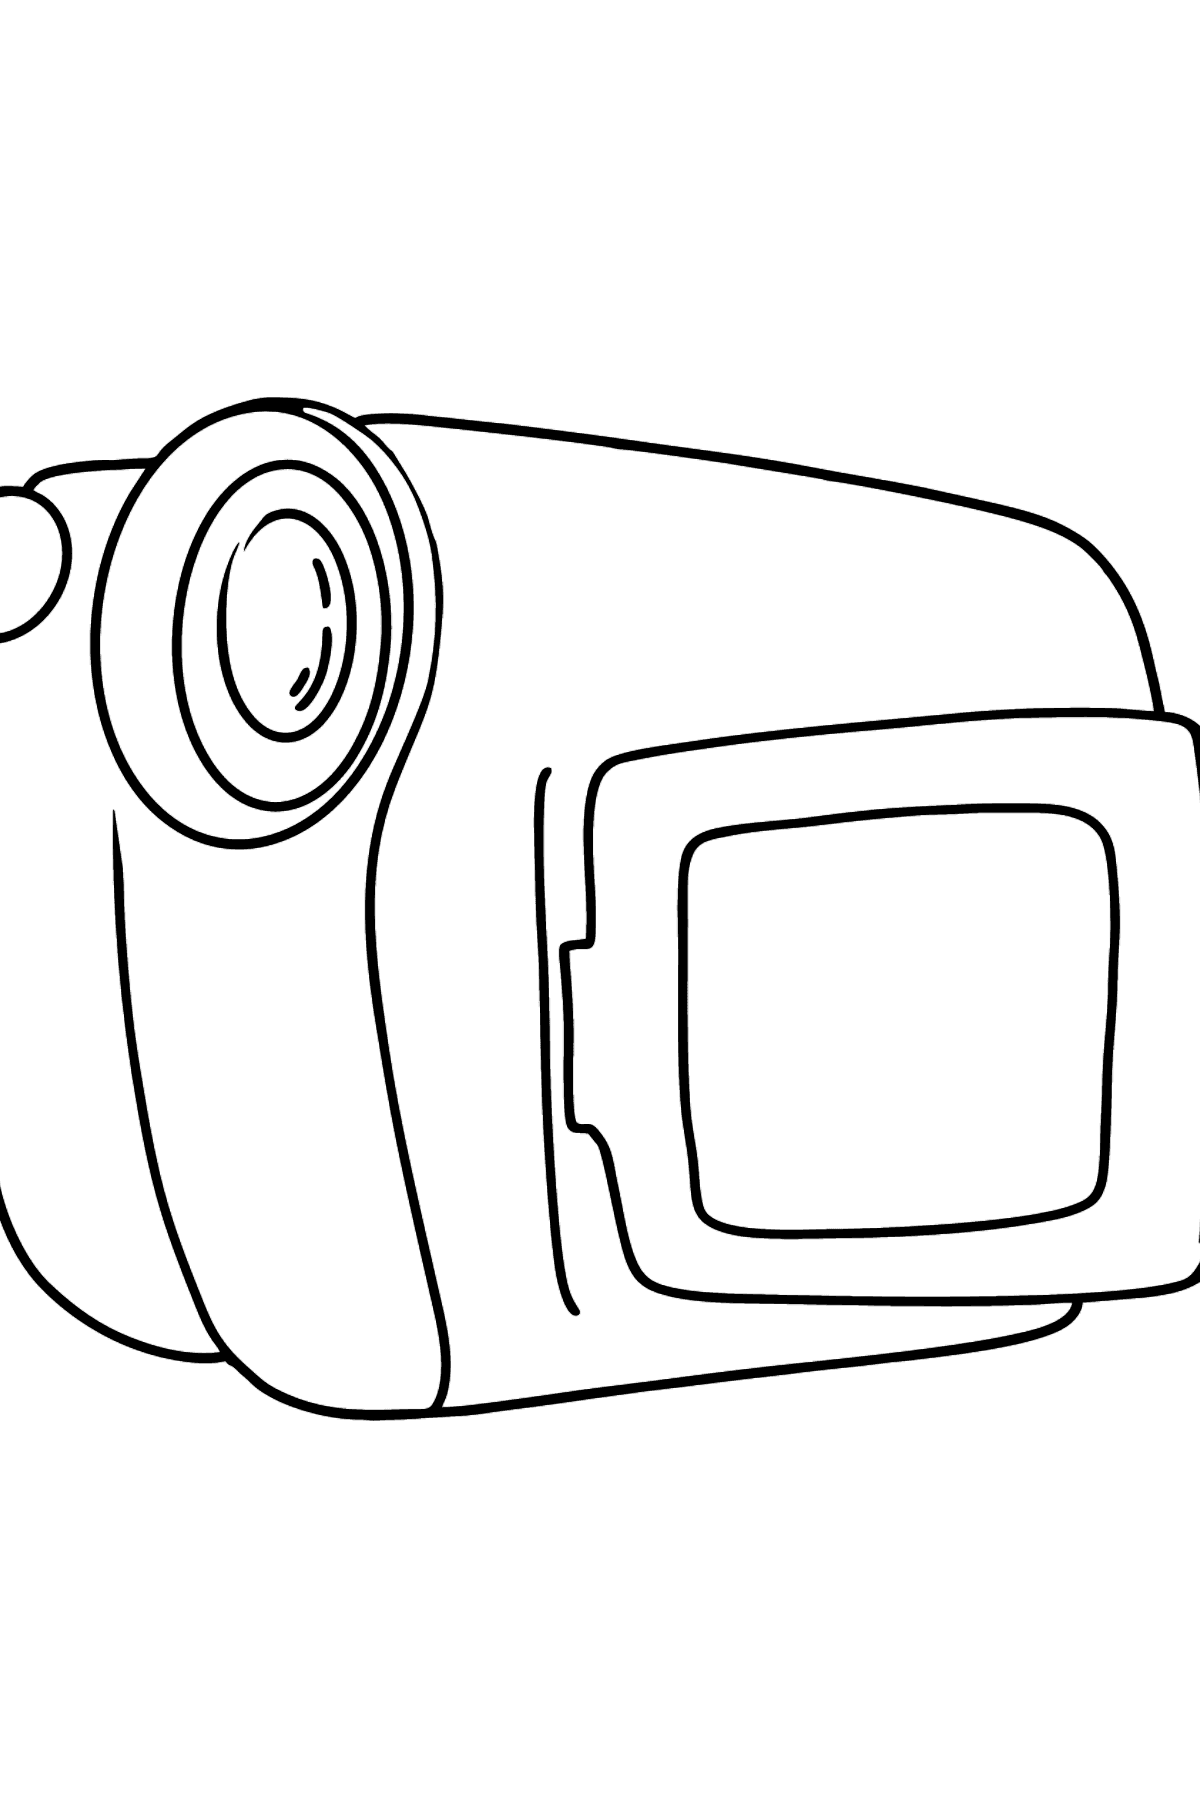 Video camera coloring page - Coloring Pages for Kids